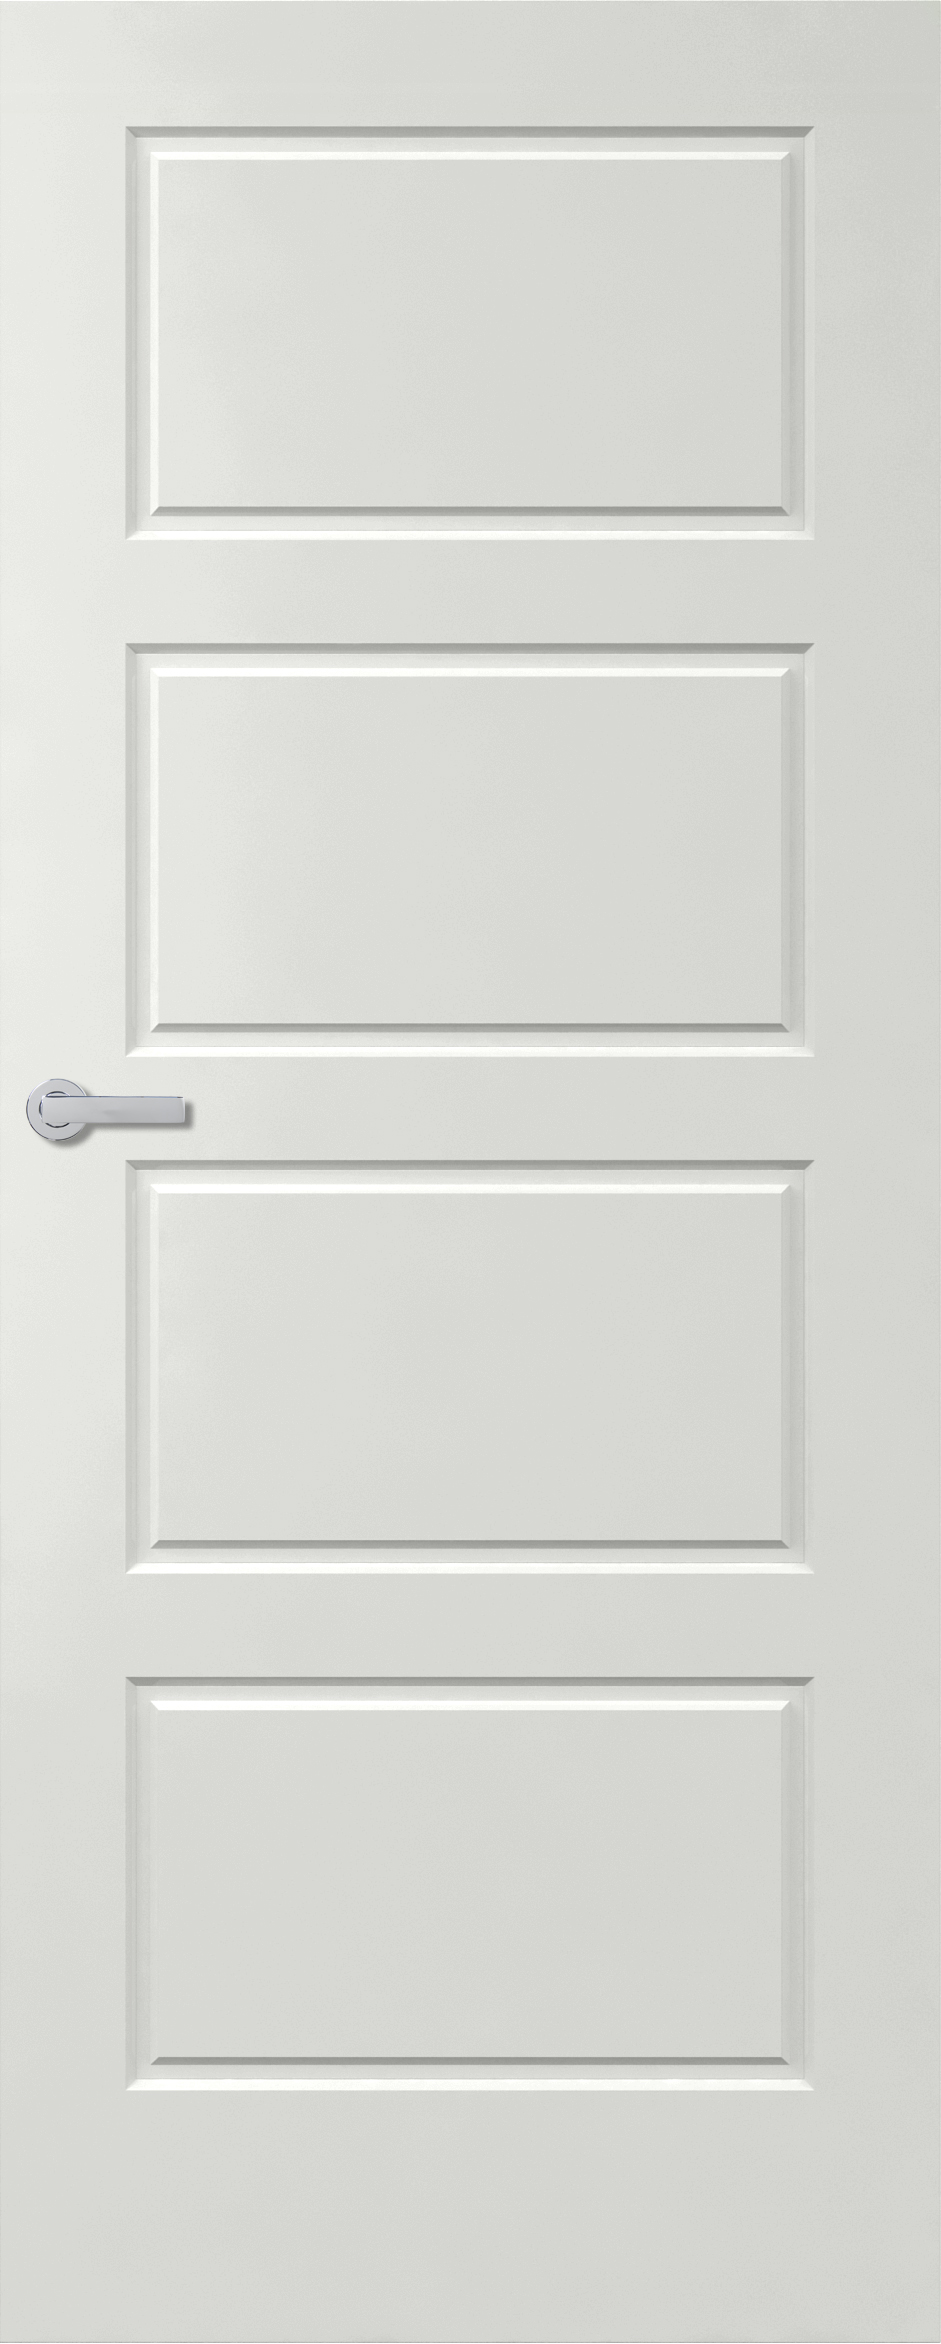 Corinthian Doors internal door Madison range PMADIN4